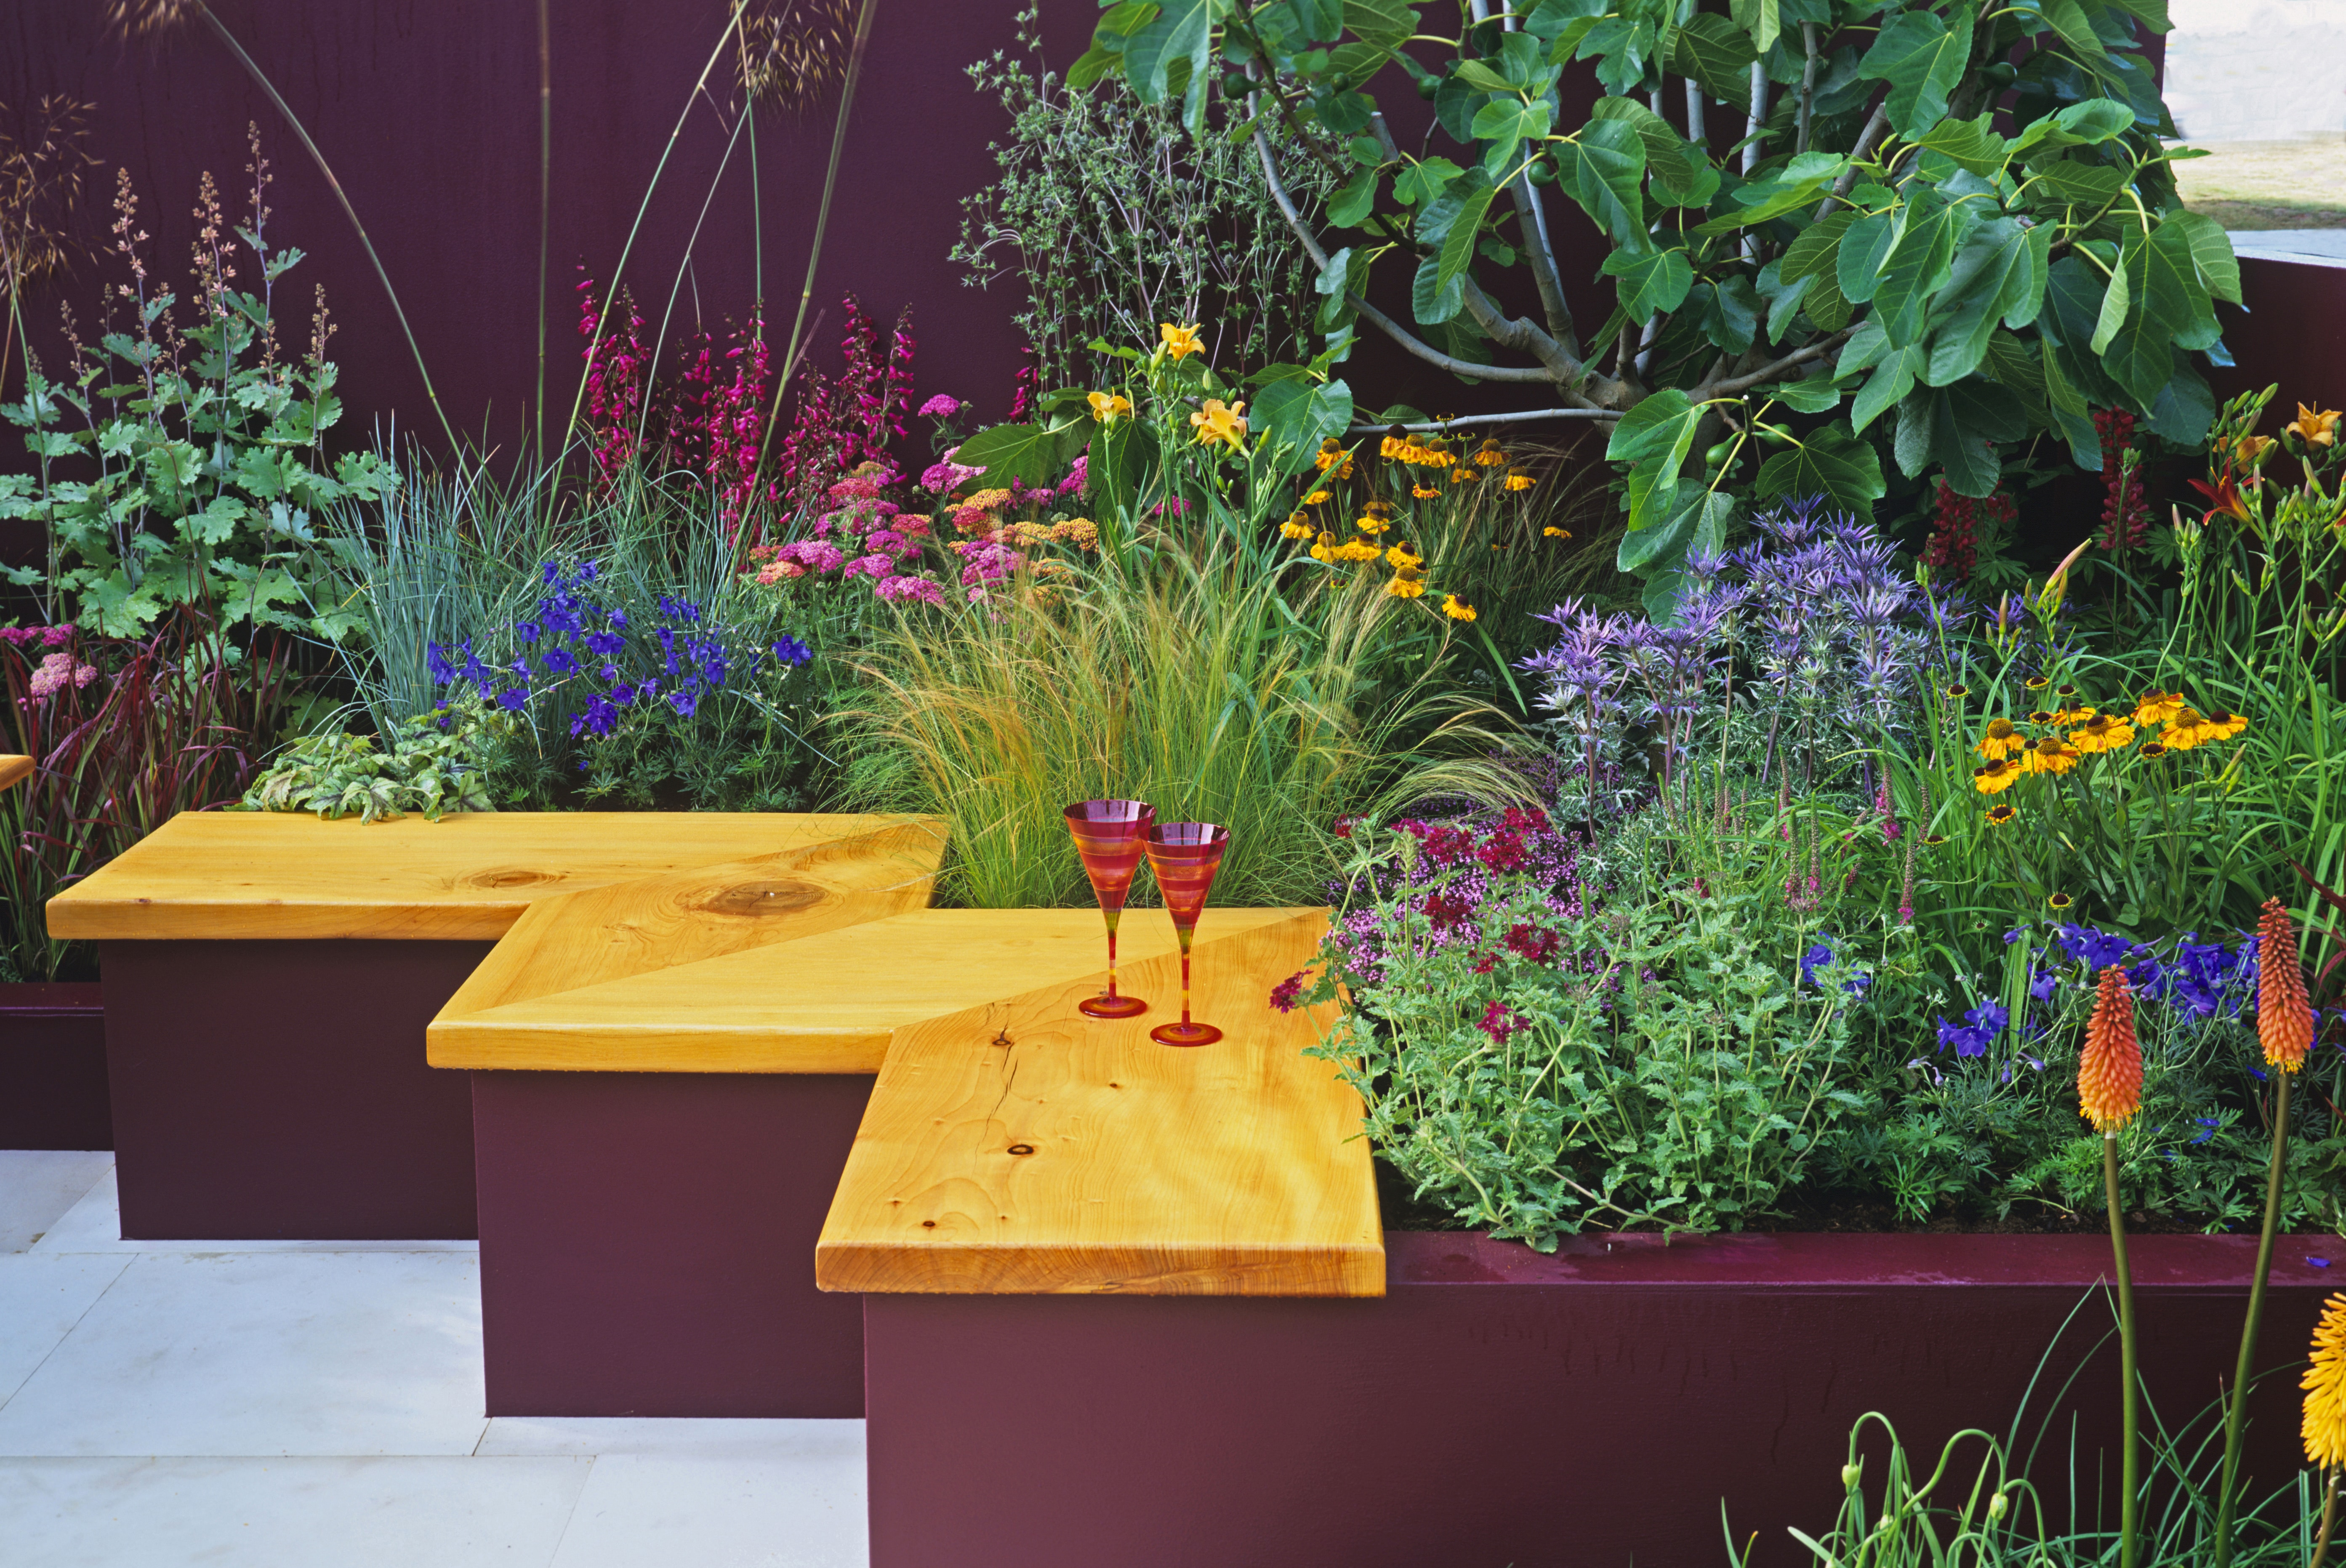 Colourful planting in 'Summer Cocktail' garden